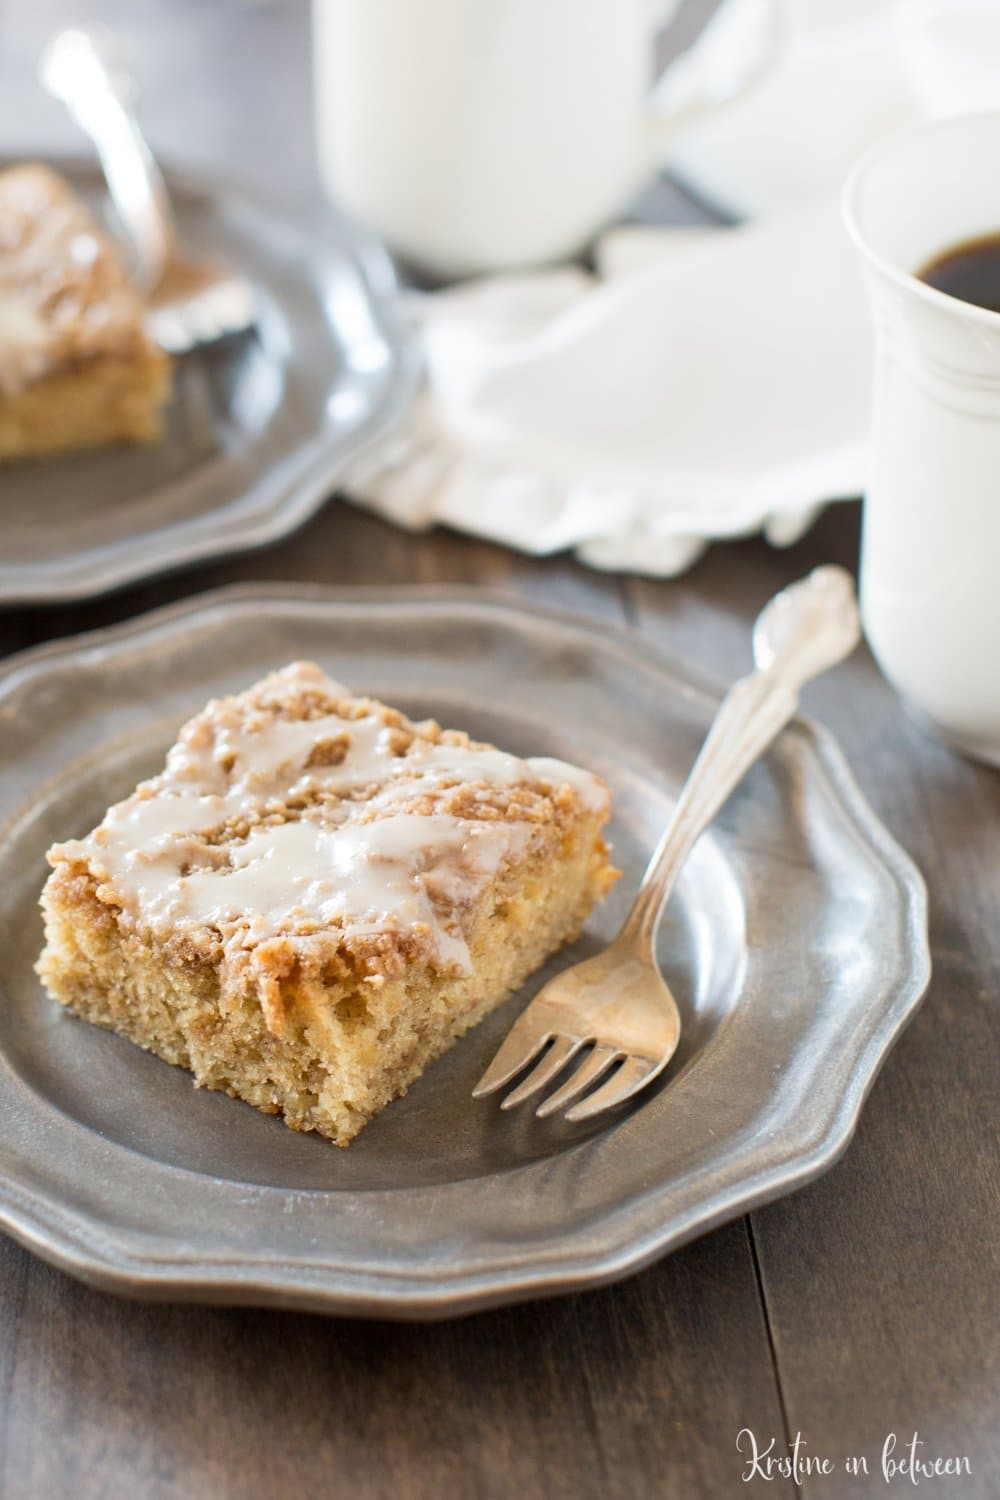 Soft and delicious banana crumb cake makes the perfect breakfast treat!